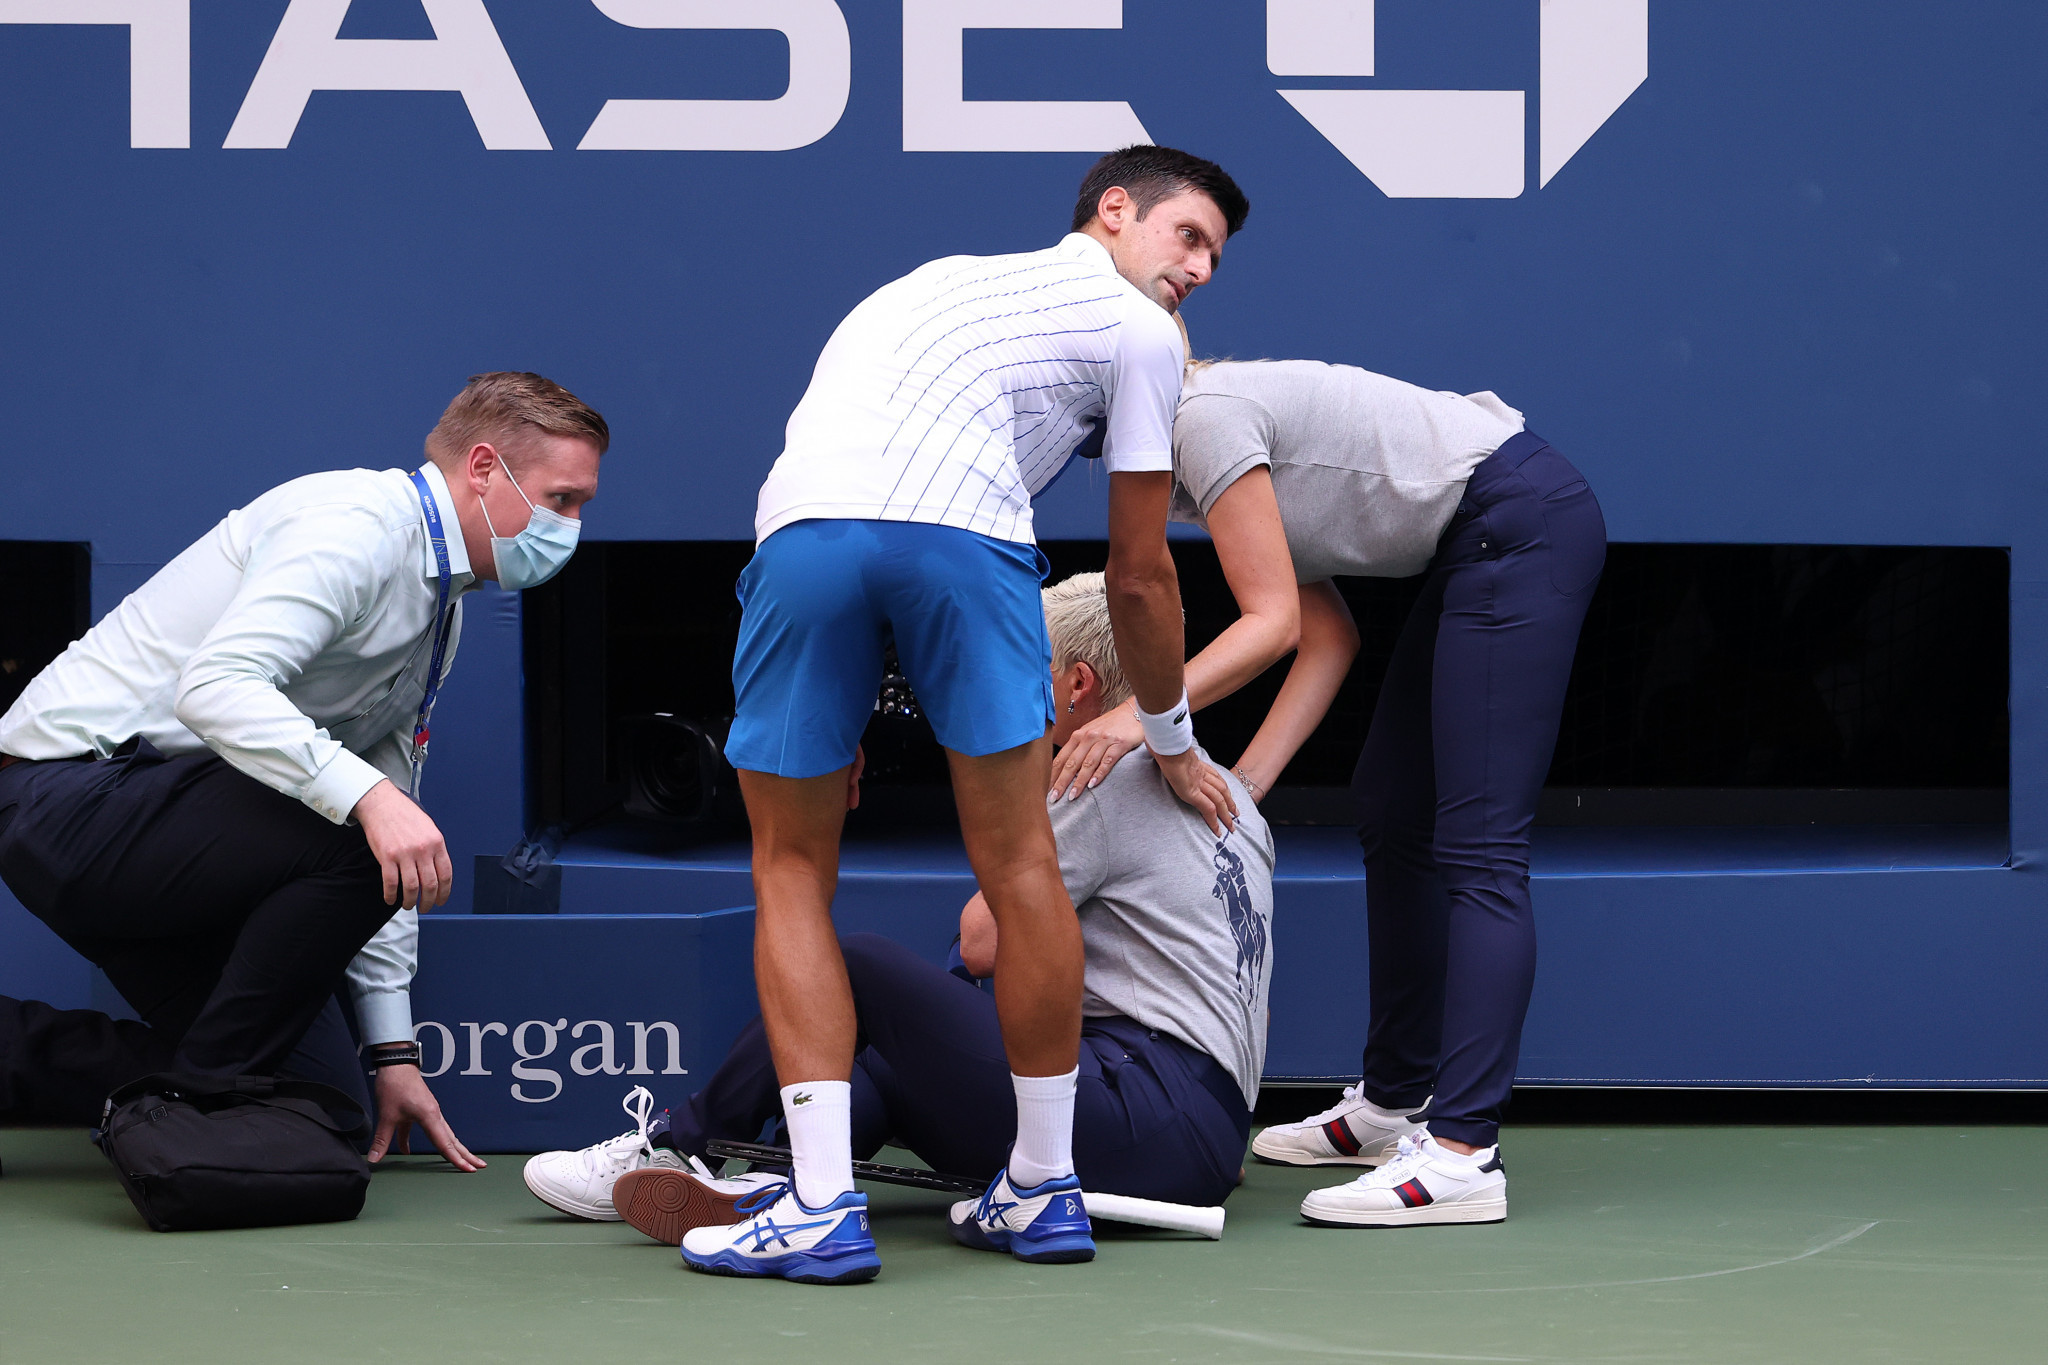 Djokovic disqualified from US Open as more women's seeds lose